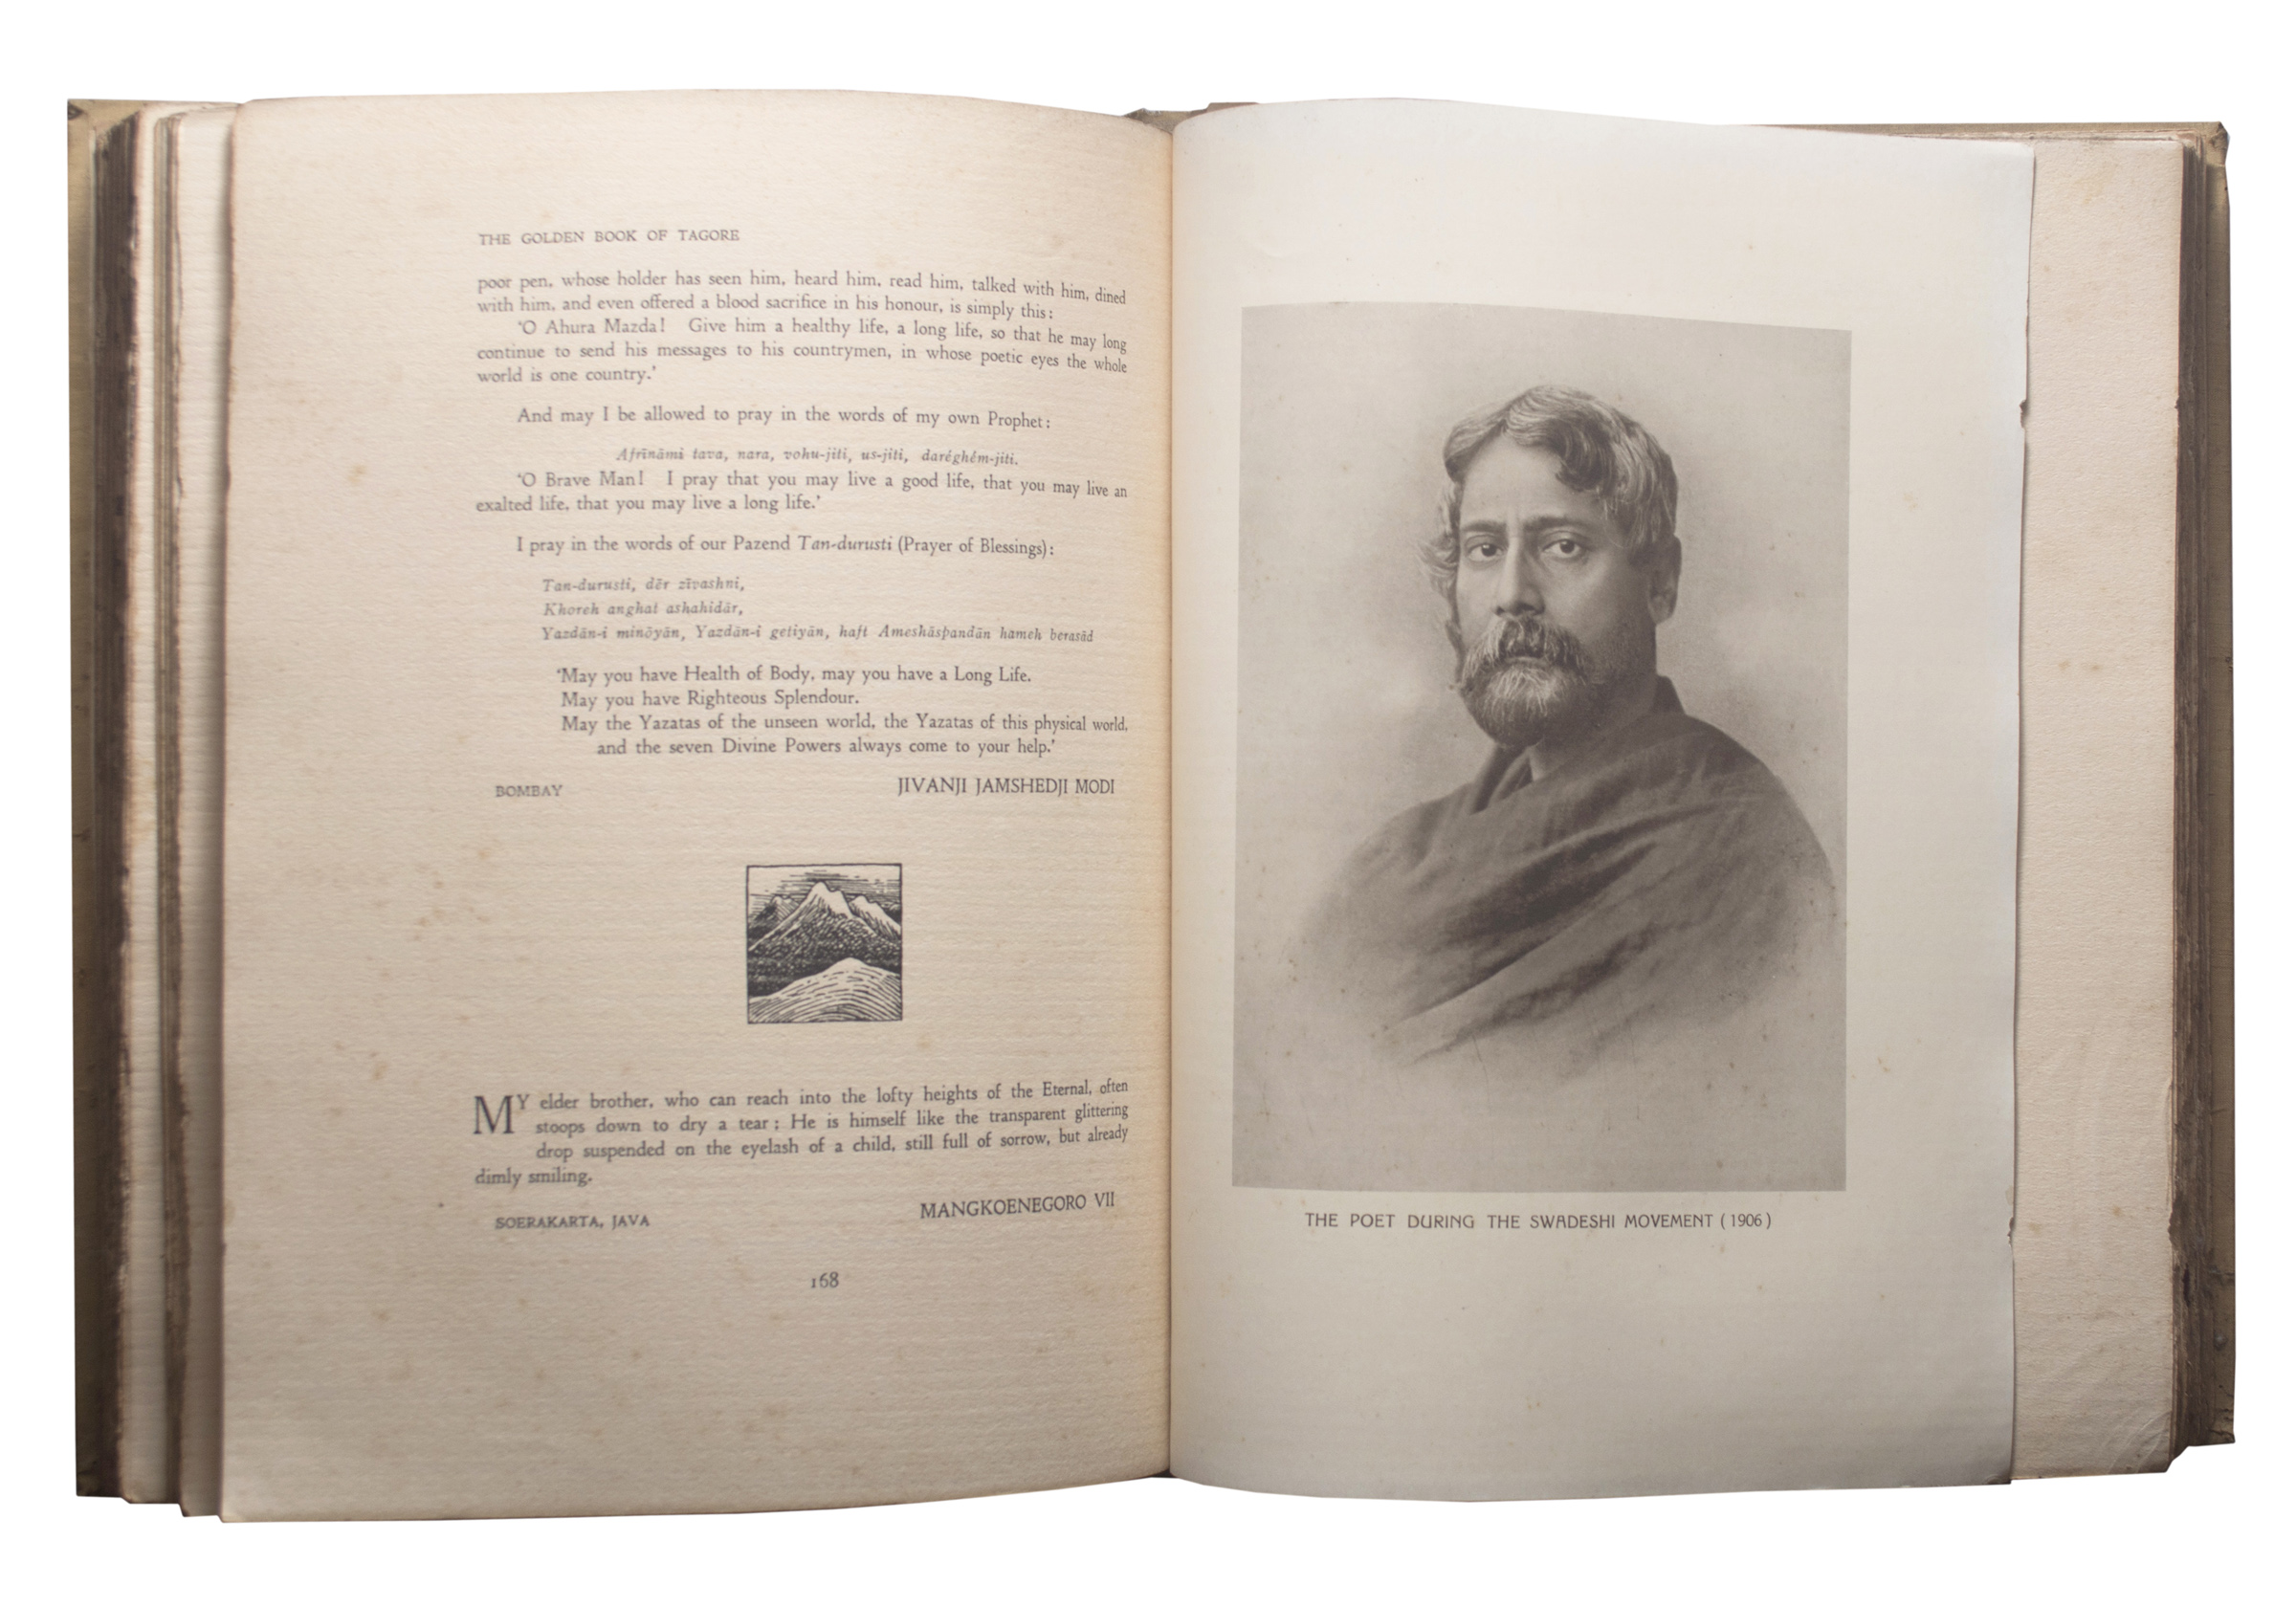 Golden Book of Tagore edited by Ramananda Chatterjee 1931 edition